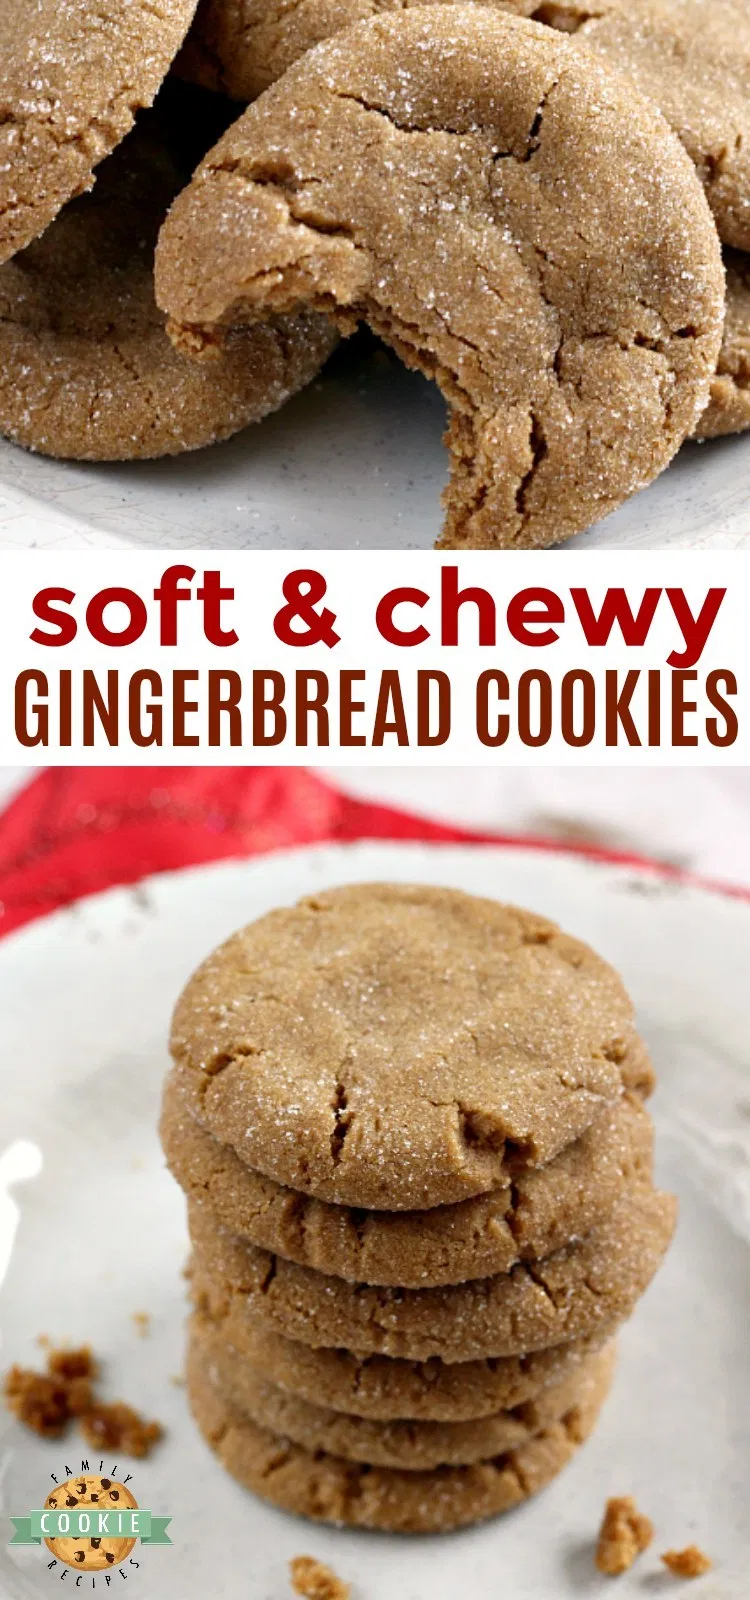 SOFT GINGERBREAD COOKIES - Family Cookie Recipes